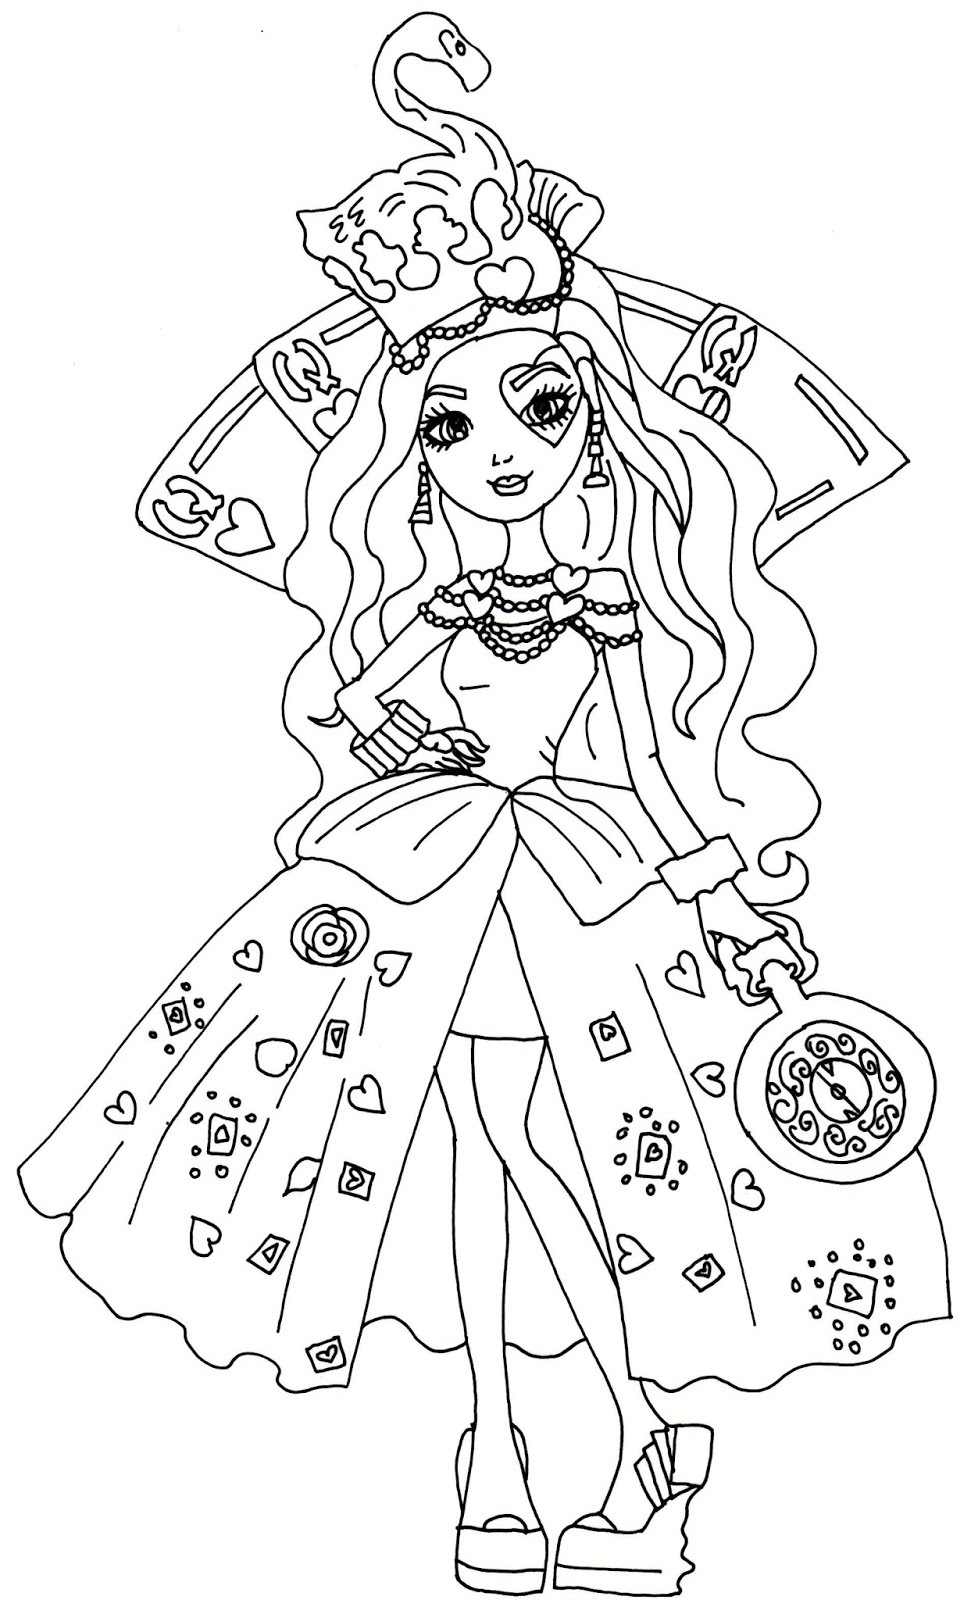 Ever after high coloring pictures - Lizzie Hearts Way Too Wonderland Ever After High Coloring Page